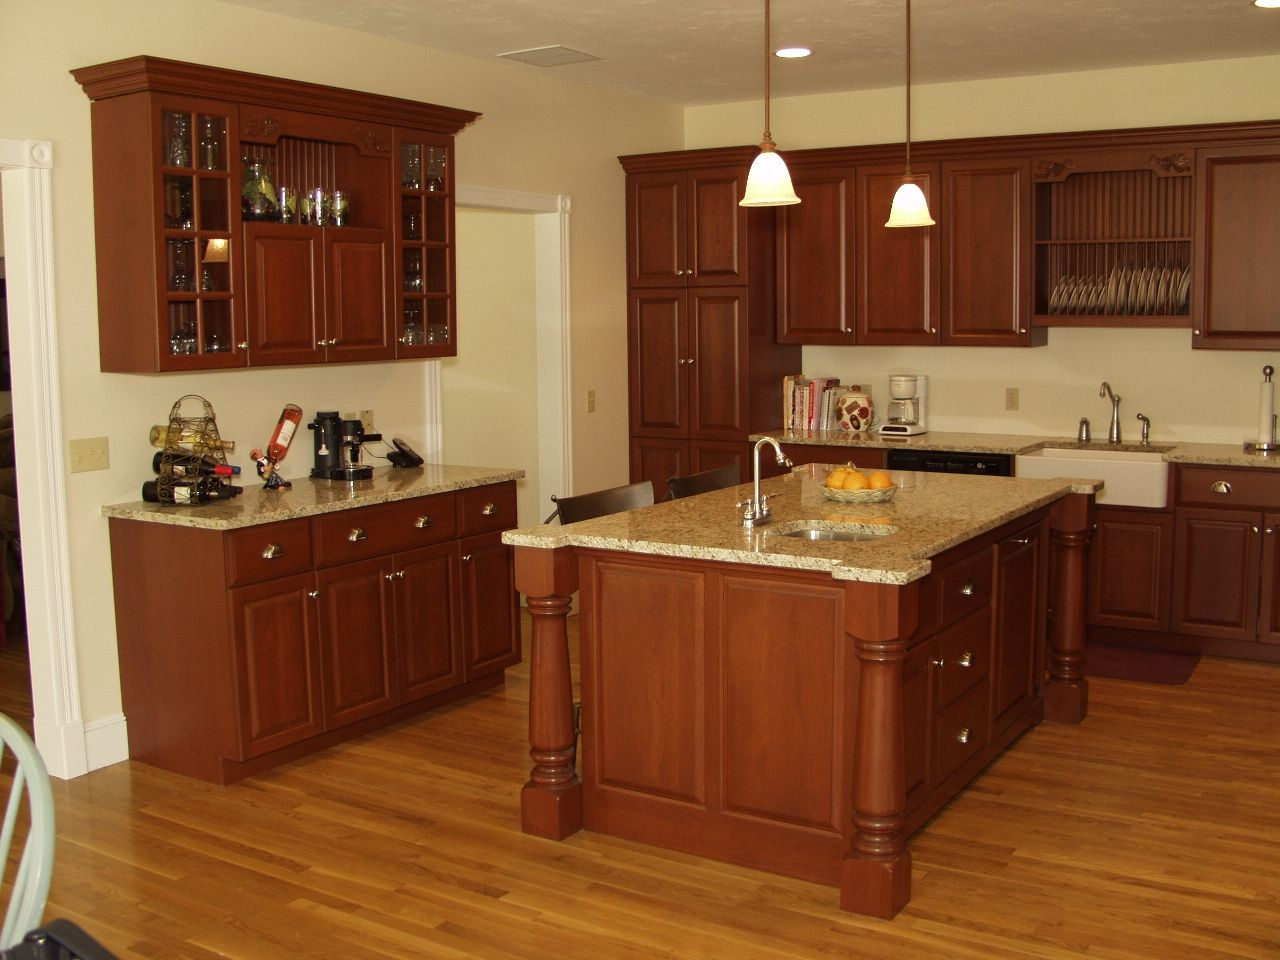 Kitchen quartz countertops with oak cabinets cabinets with Newwood cupboards